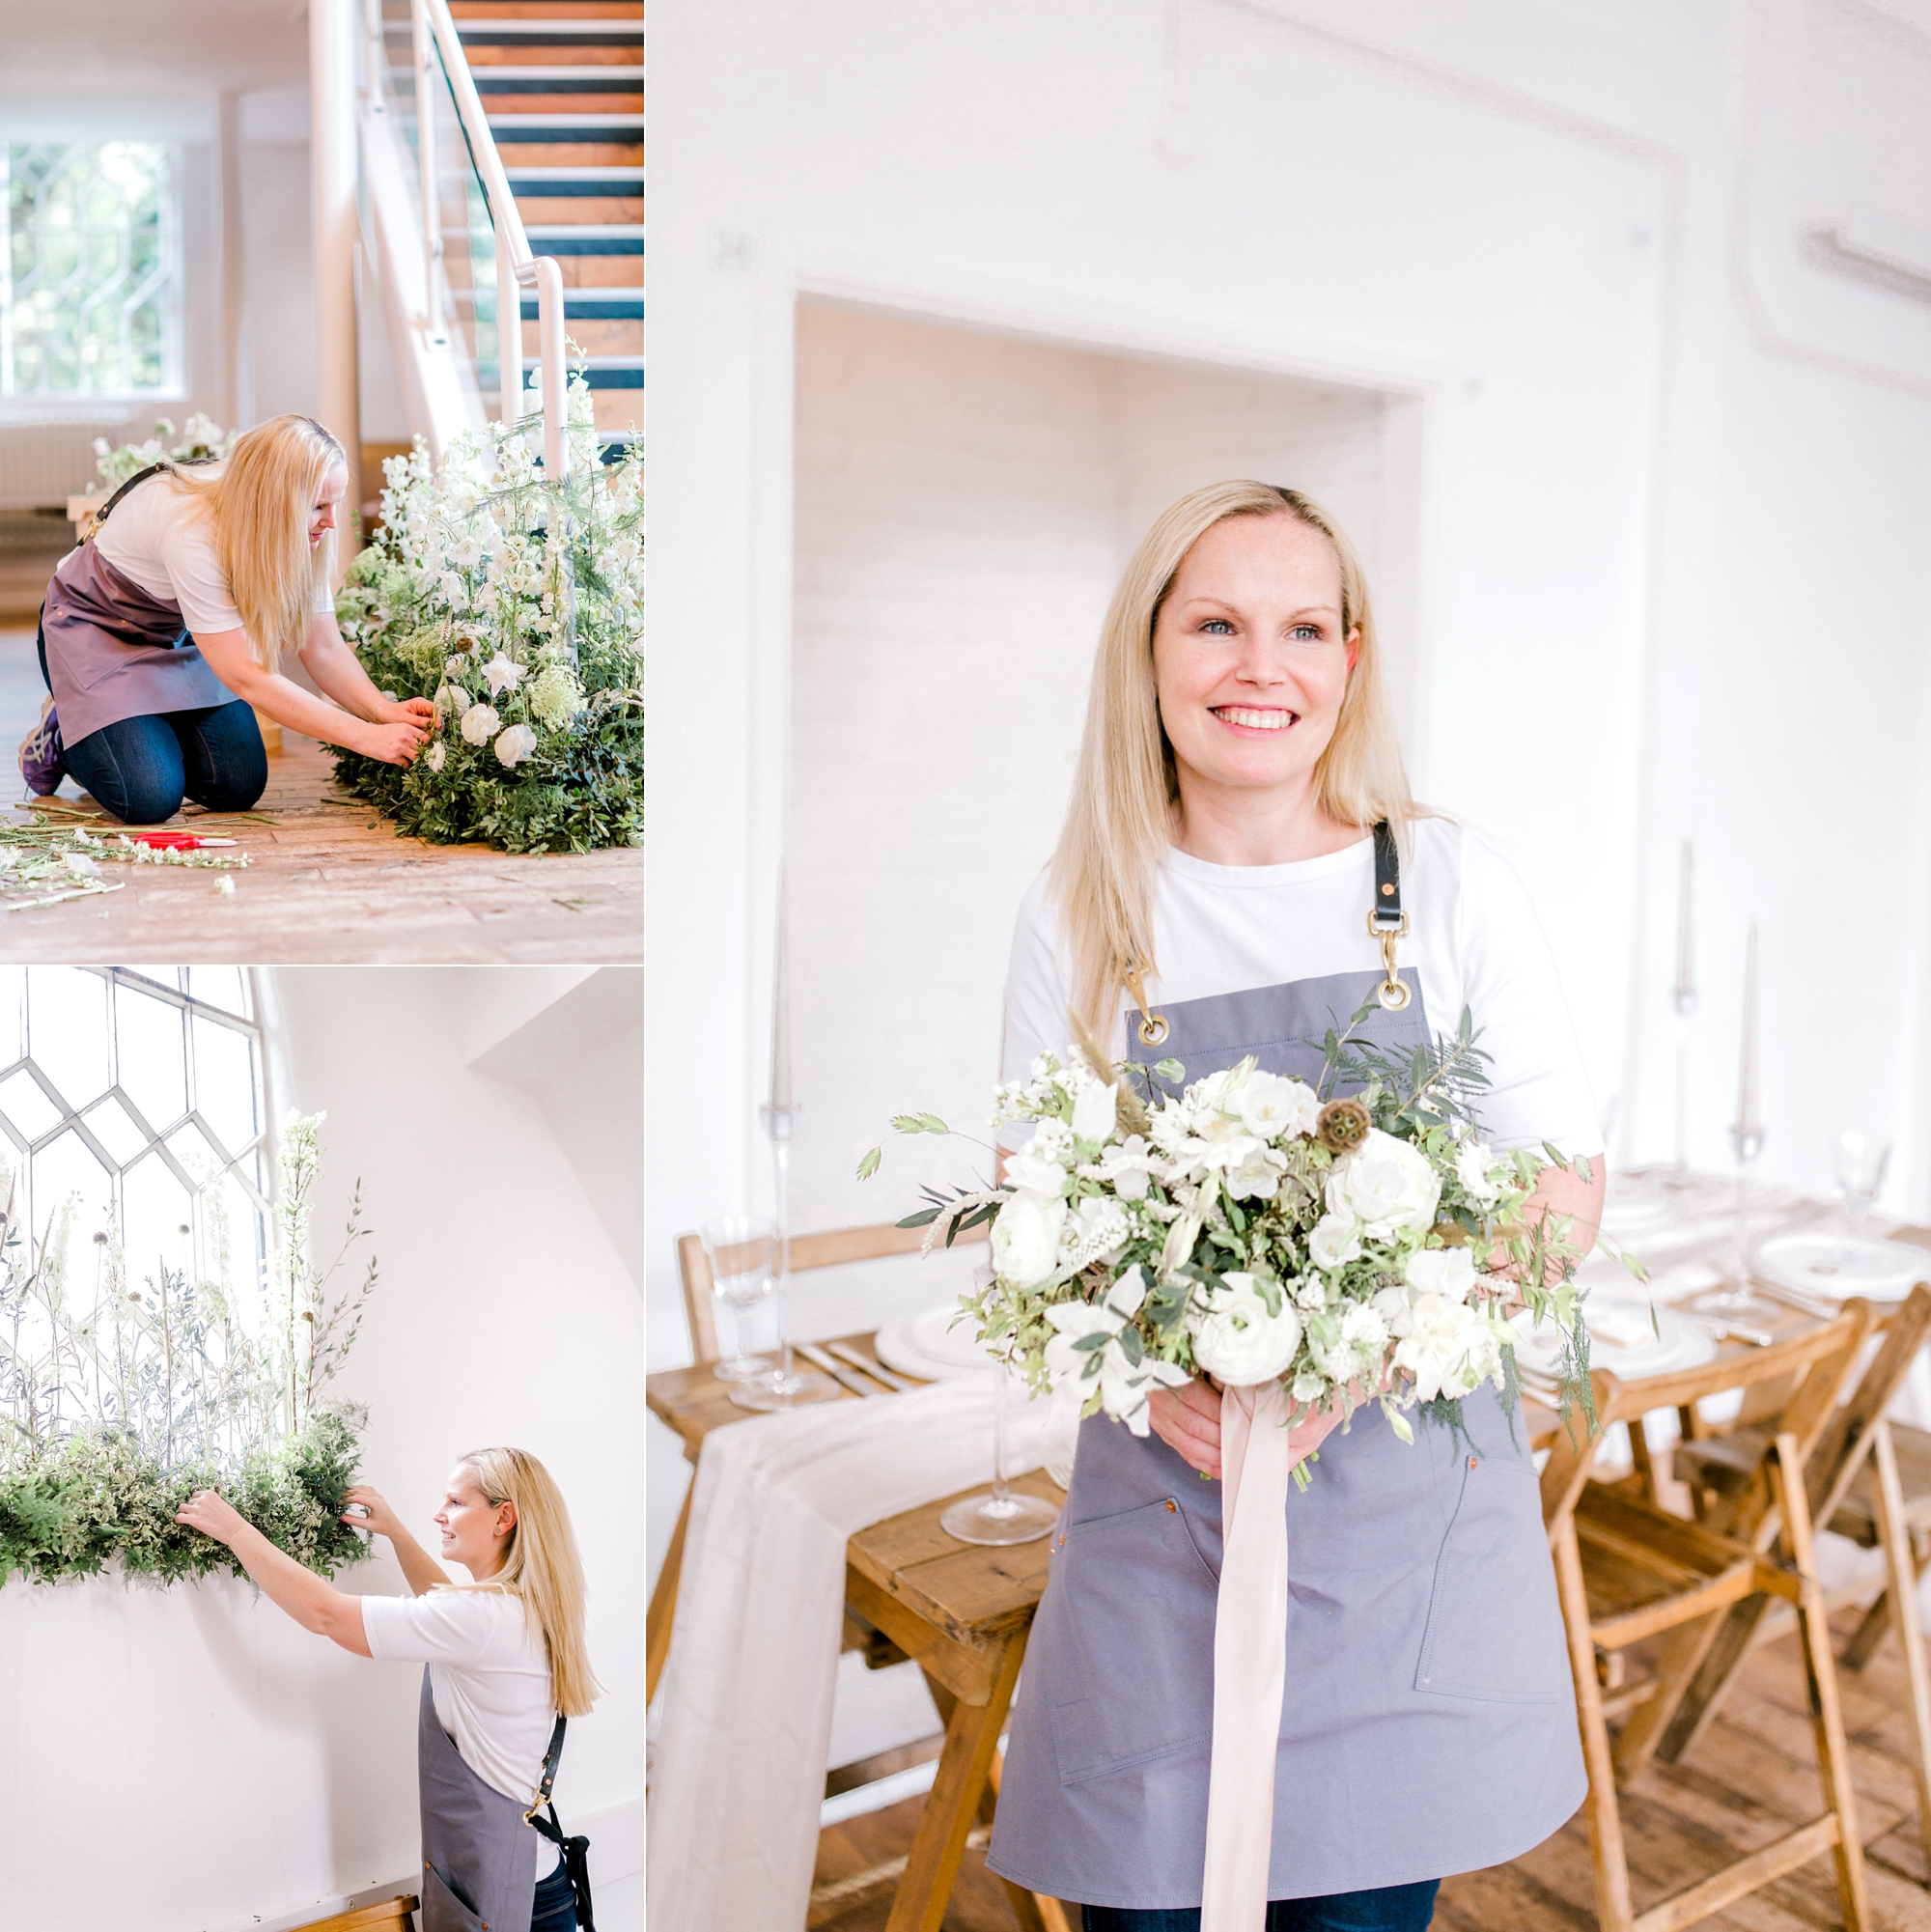 Alana from Petal and Wild wedding florist installing elegant meadow florals at Essex styled shoot